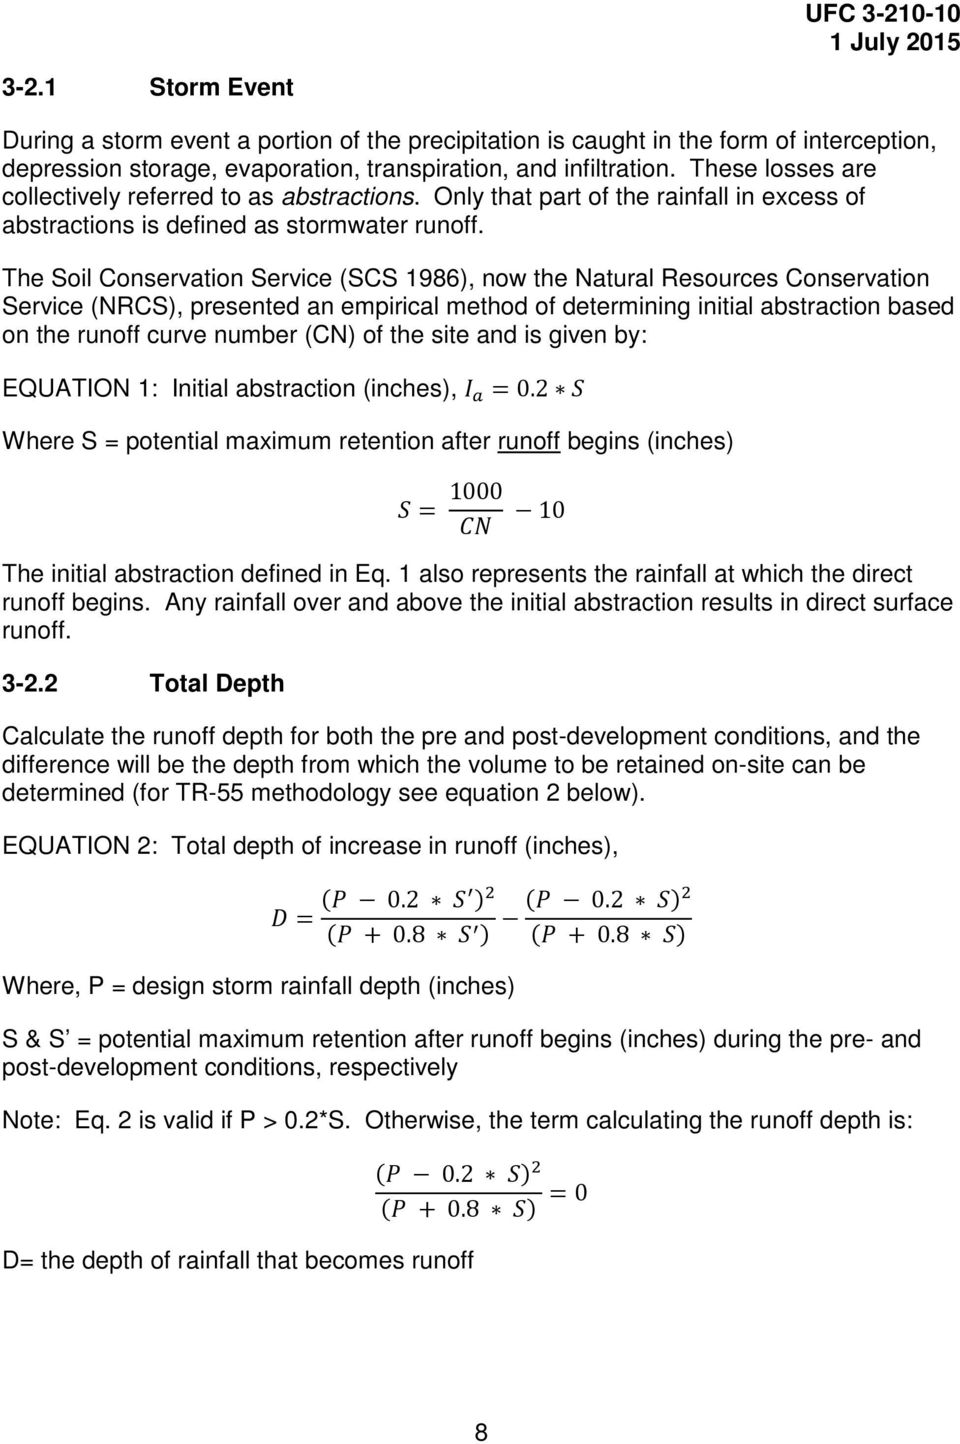 The Soil Conservation Service (SCS 1986), now the Natural Resources Conservation Service (NRCS), presented an empirical method of determining initial abstraction based on the runoff curve number (CN)